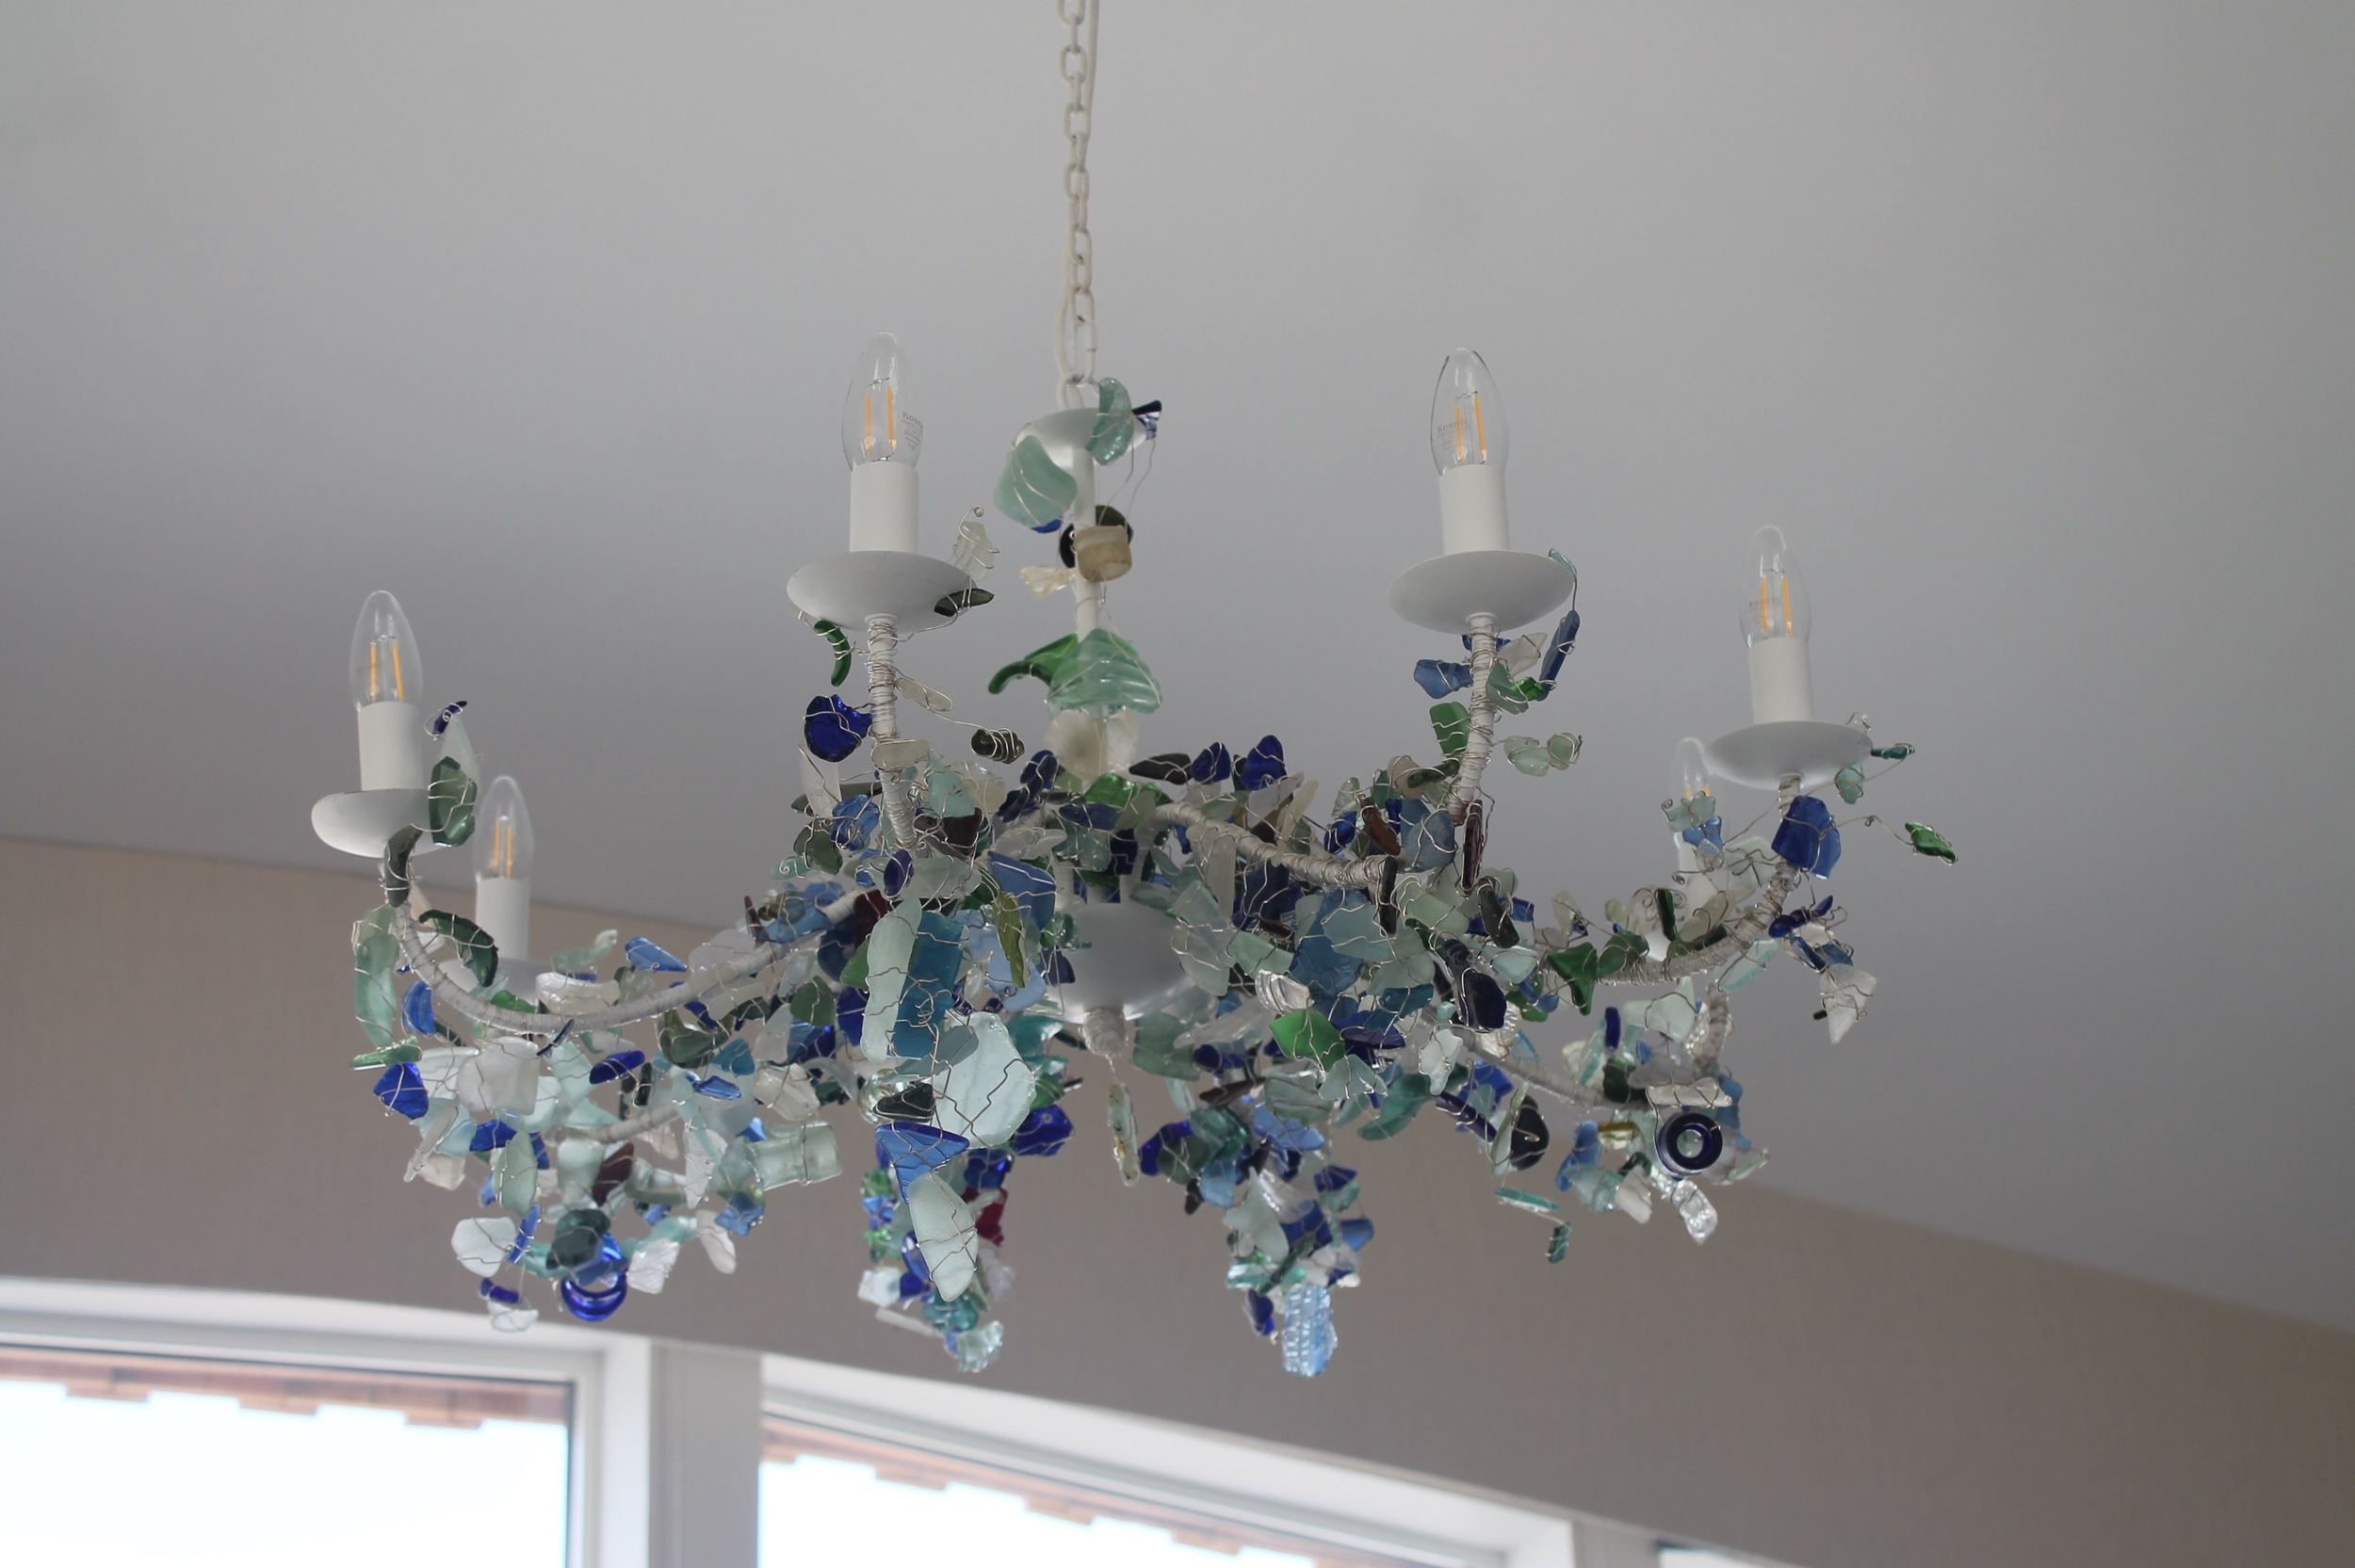 This special feature chandelier was made by Jane Blanchard, our interior design partner, from many pieces of seaglass painstakingly wired in place